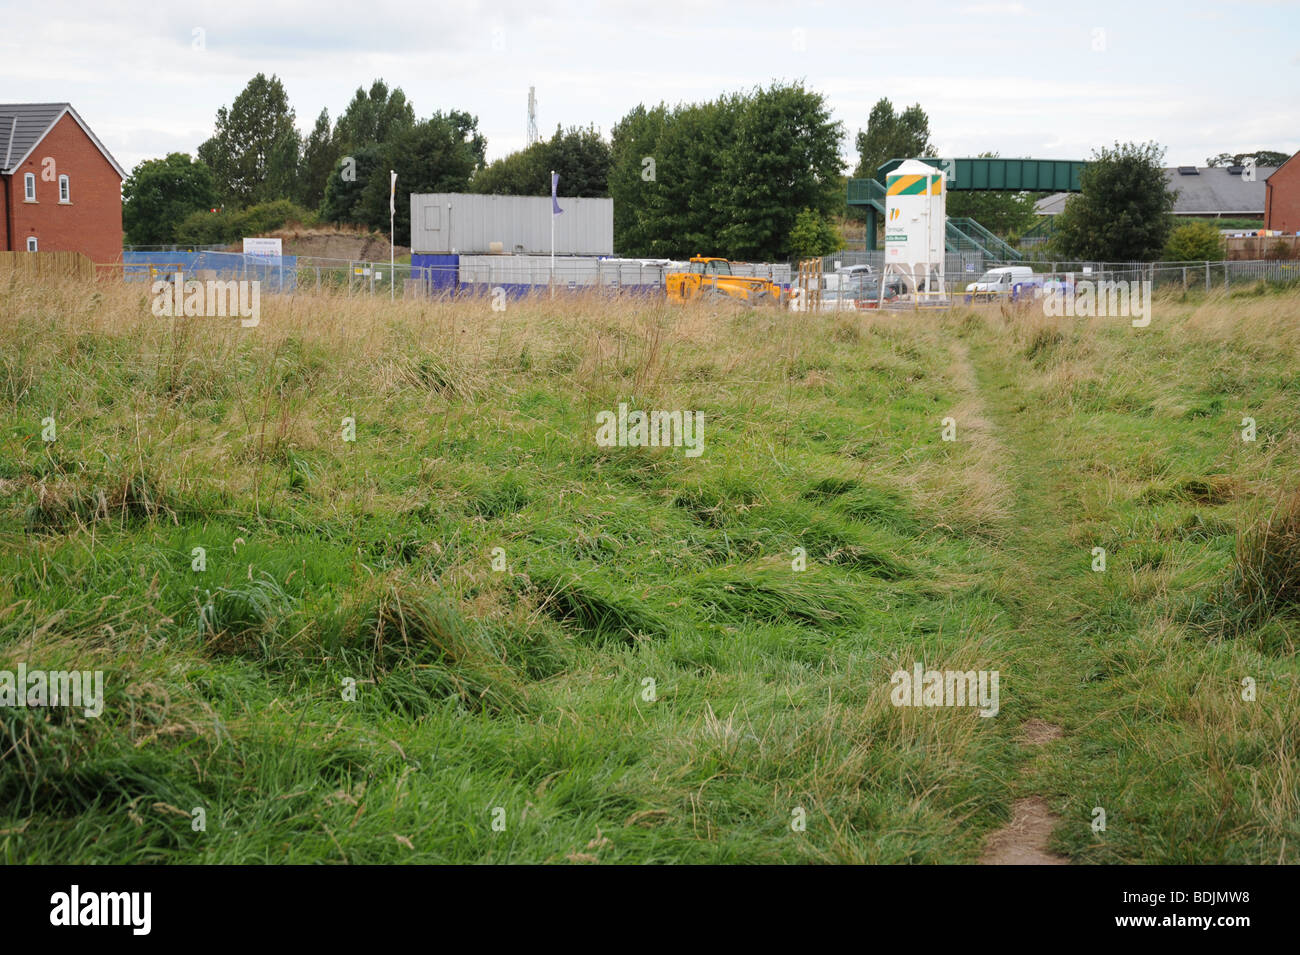 Building on Green land - Stock Image